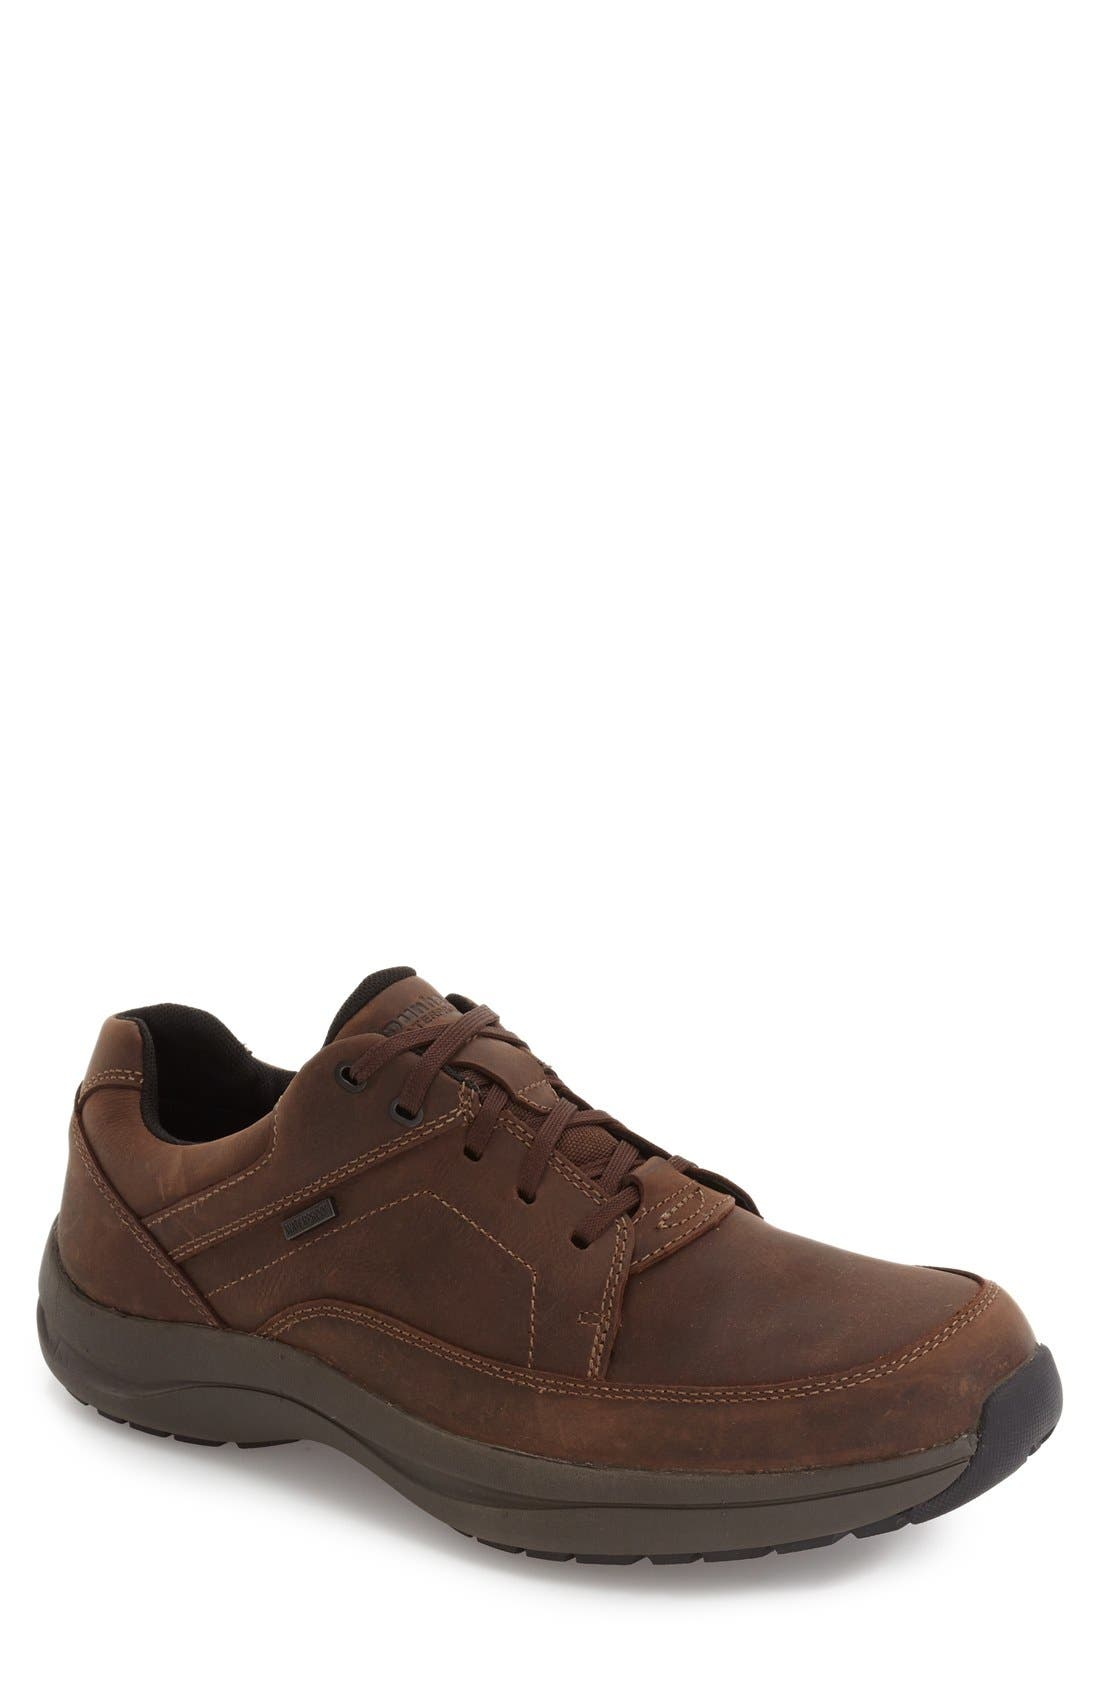 Dunham Stephen-DUN Waterproof Derby (Men)